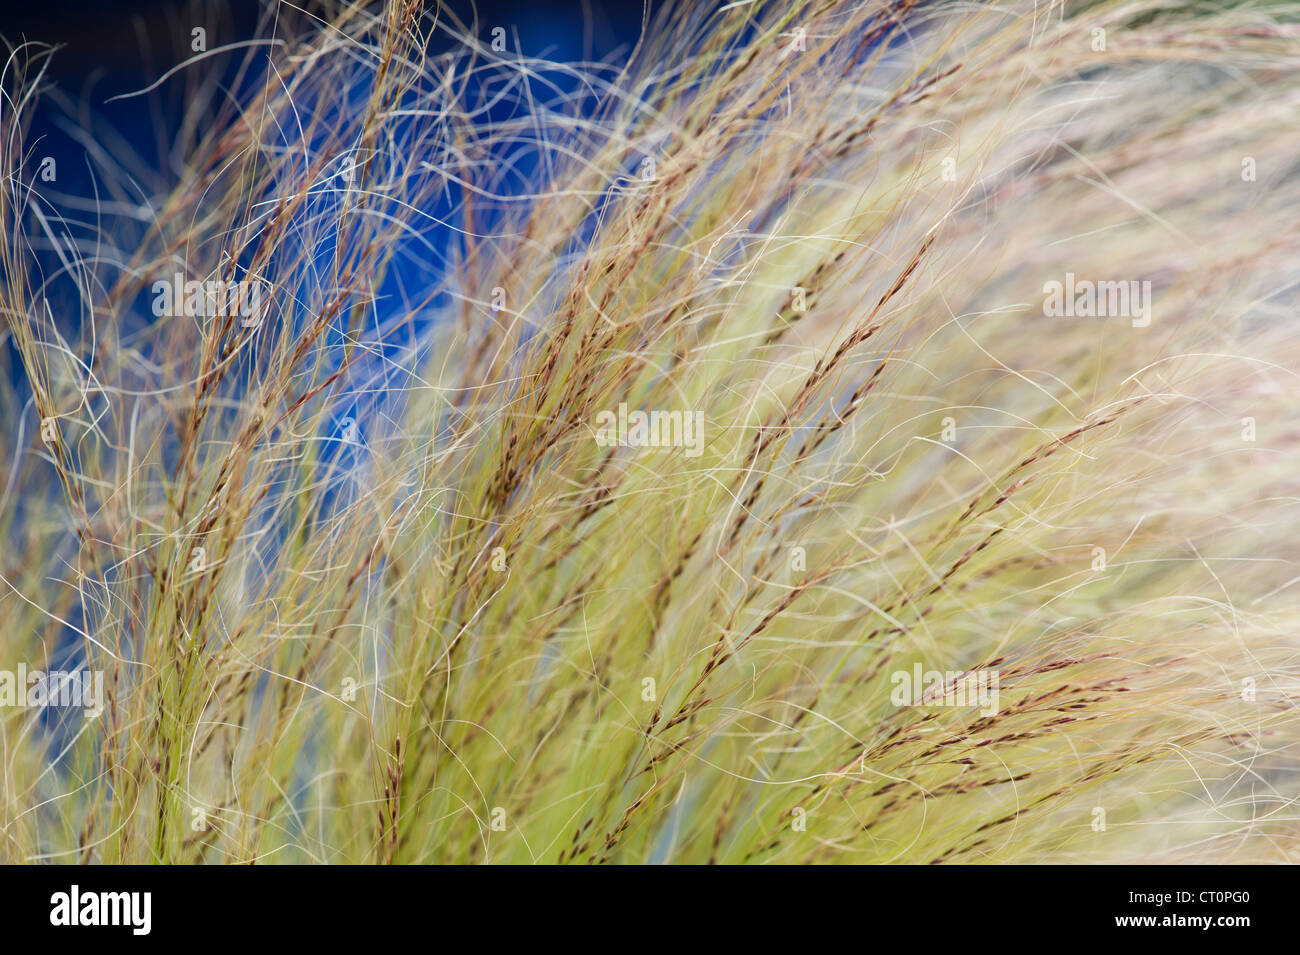 Stipa tenuissima. L'herbe et de graines de plumes mexicaine Photo Stock